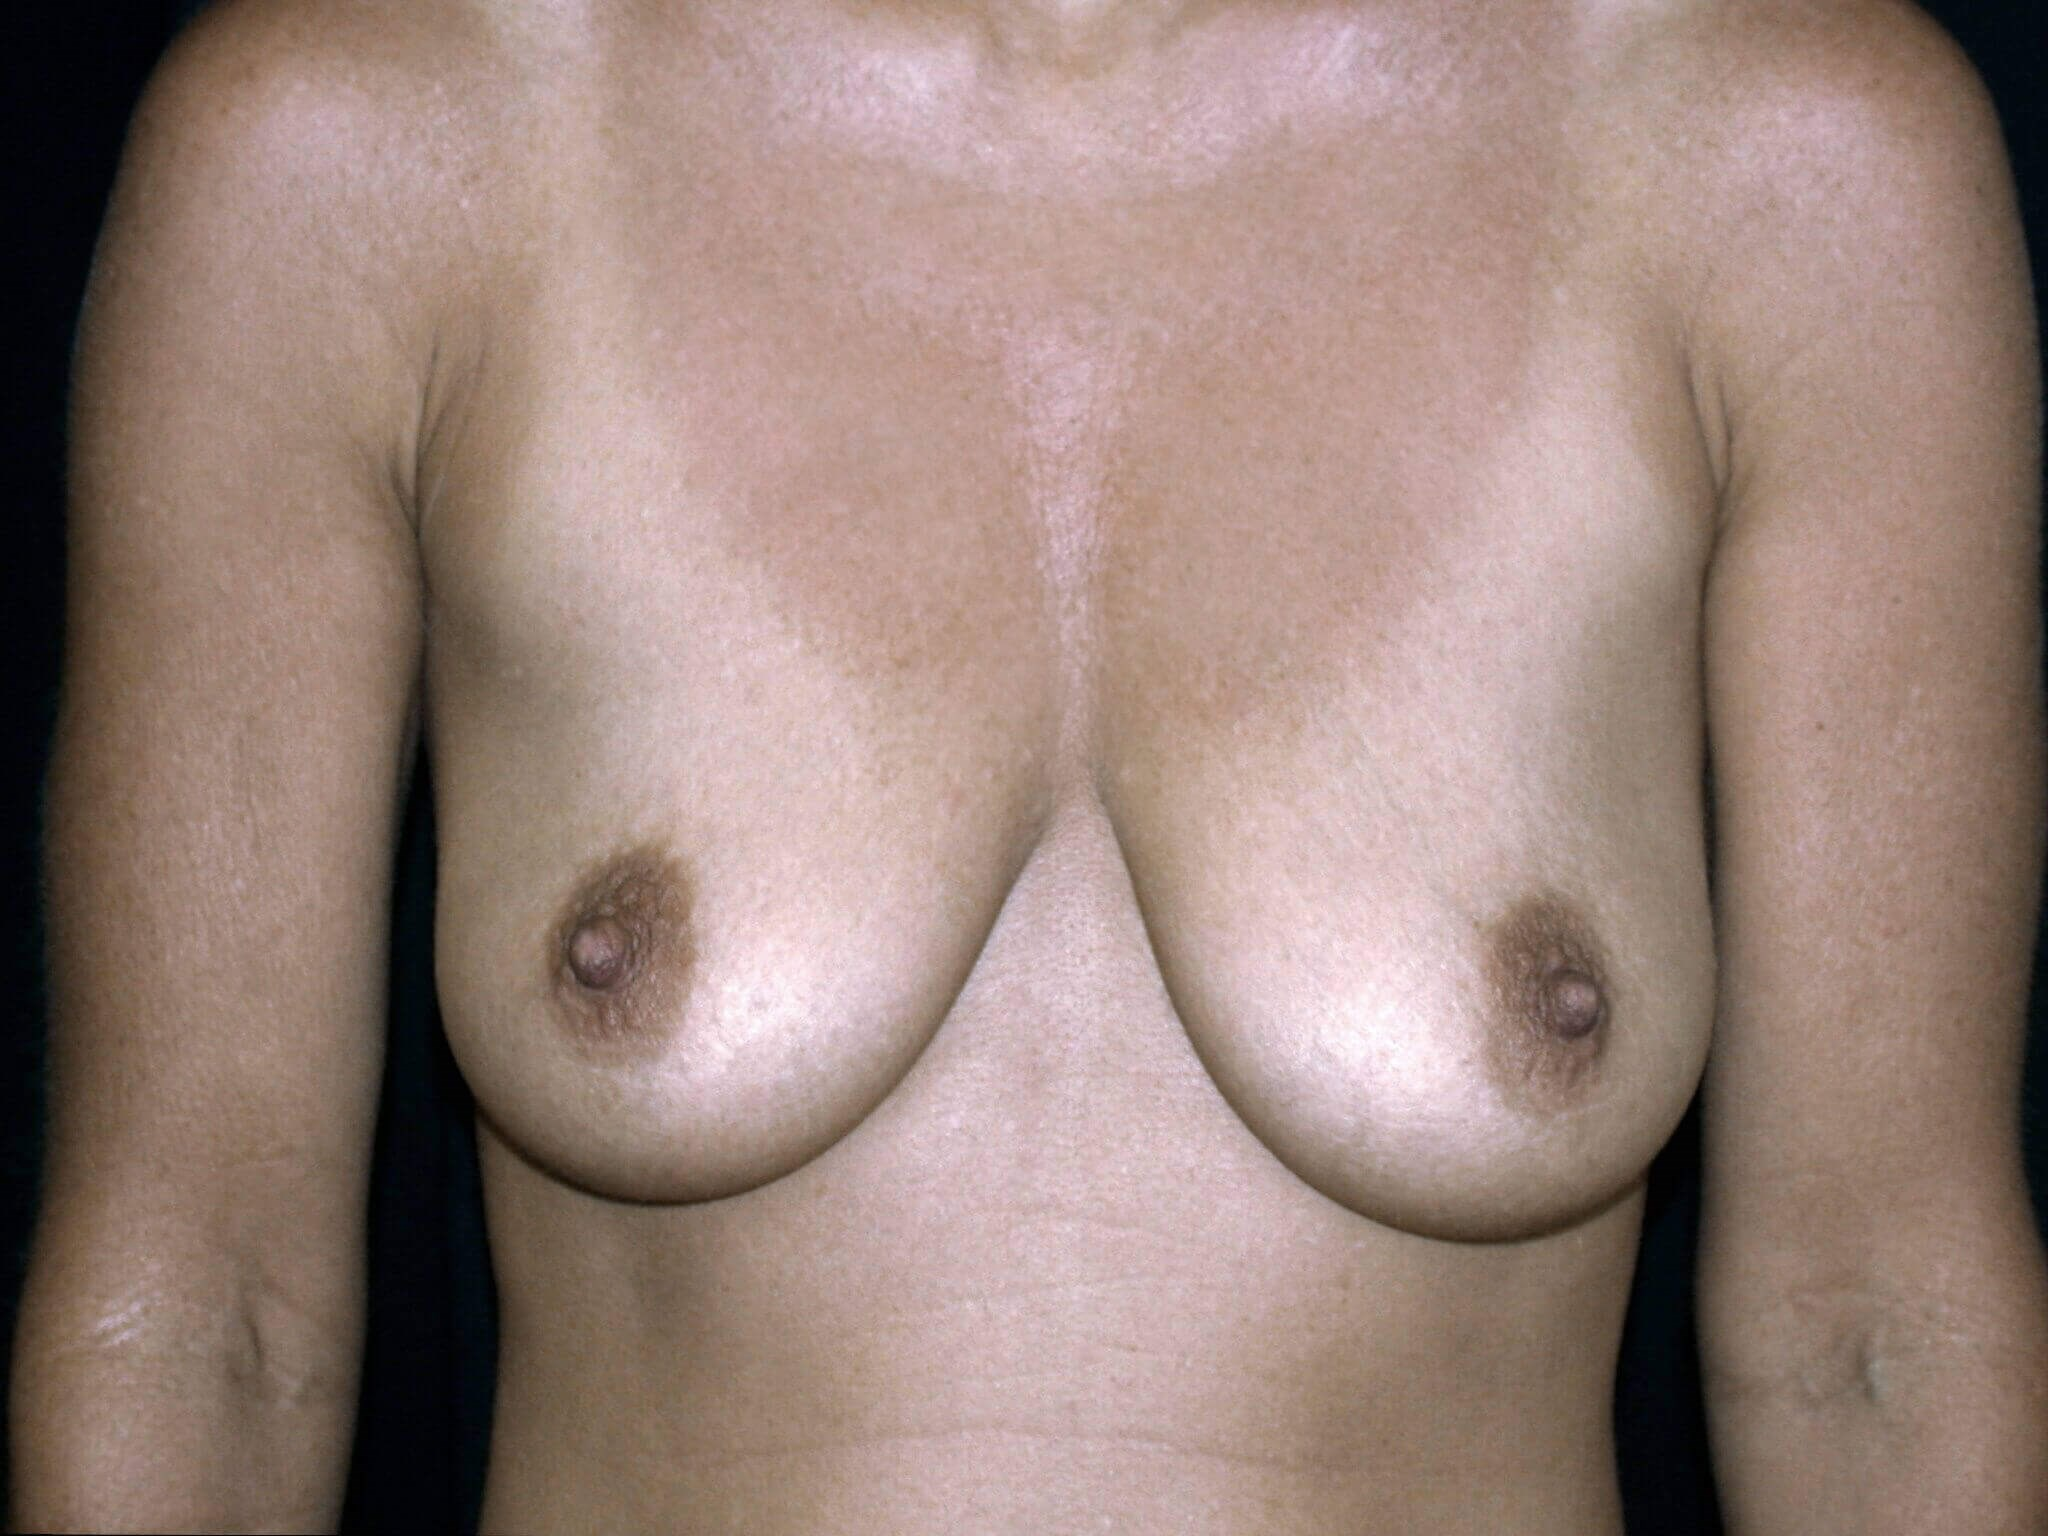 DALLAS, TEXAS WOMAN HAS BREAST LIFT AND AUGMENTATION WITH SILICONE GEL IMPLANTS